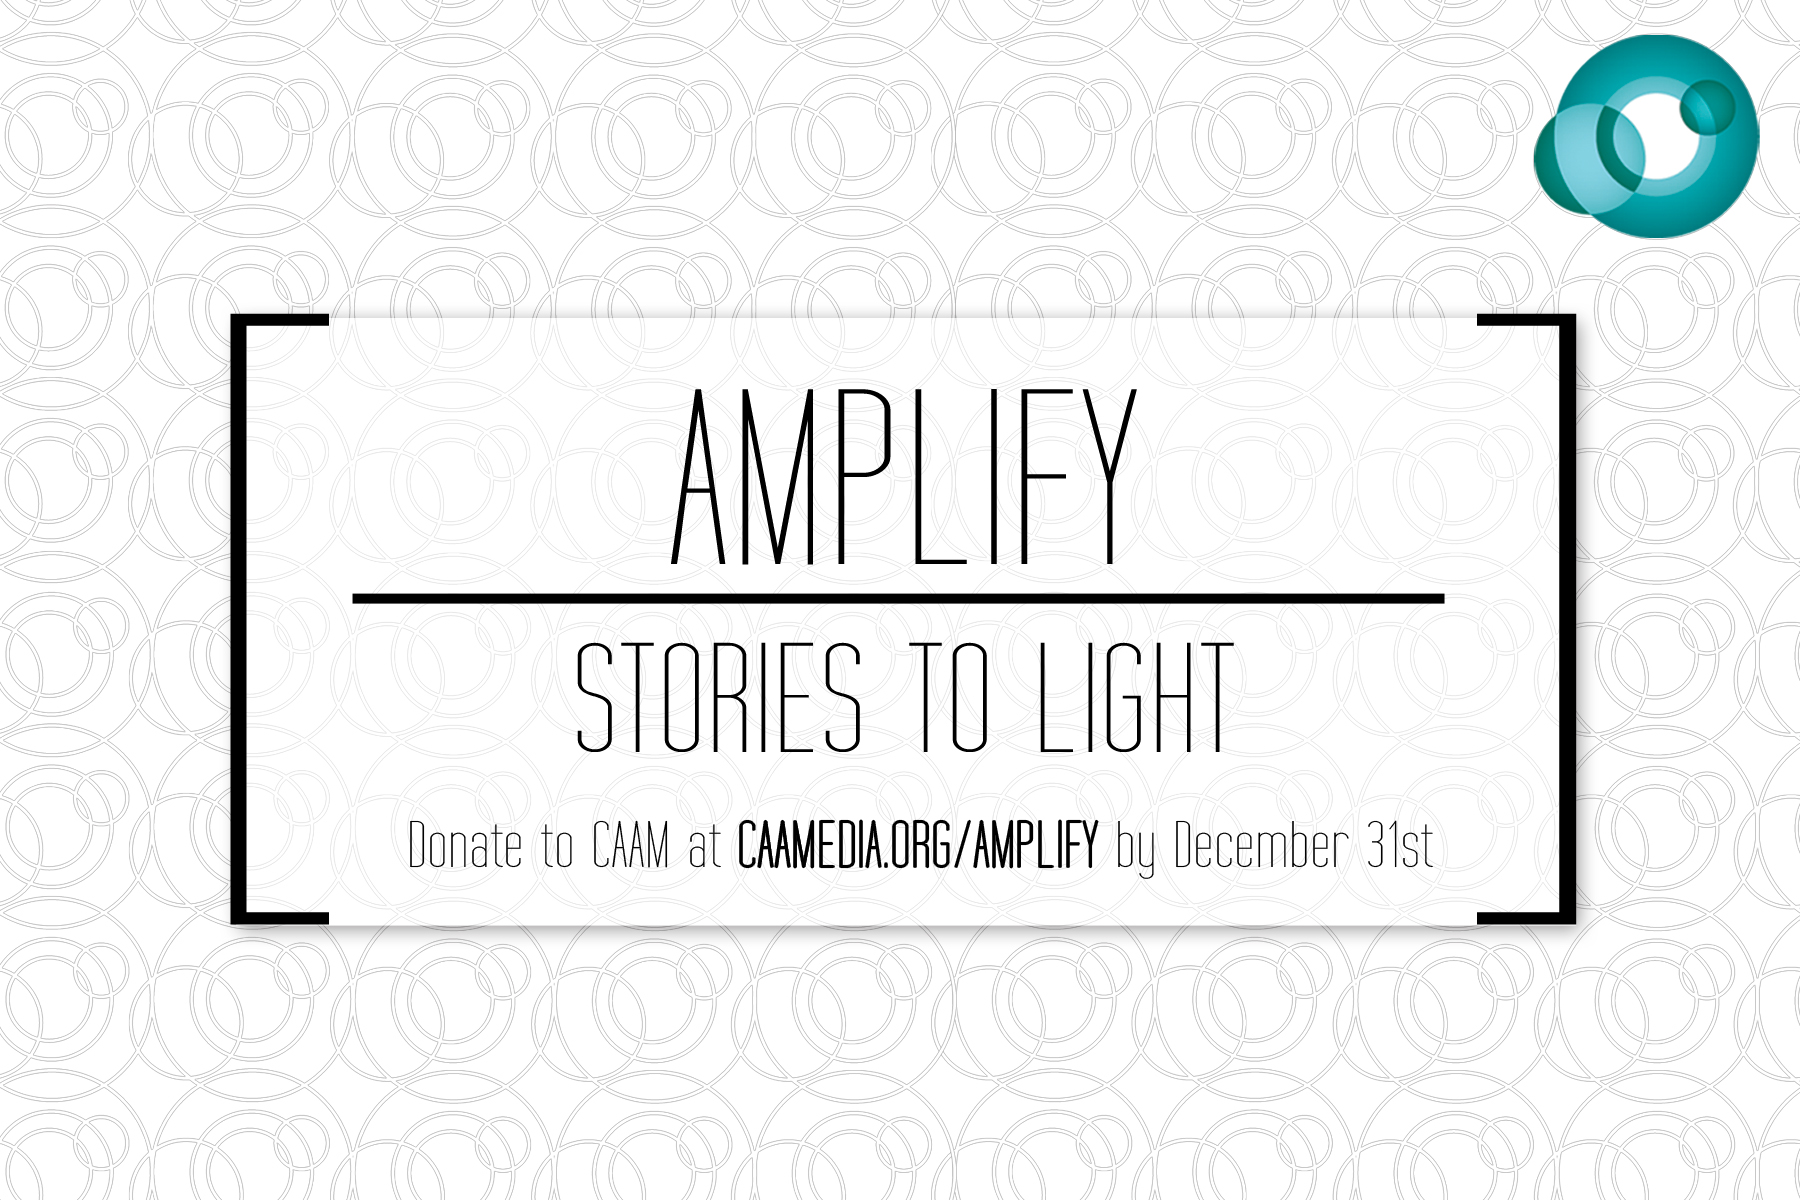 CAAM_2014_Amplifiy_Stories_to_Light_campaign_banner_v2a